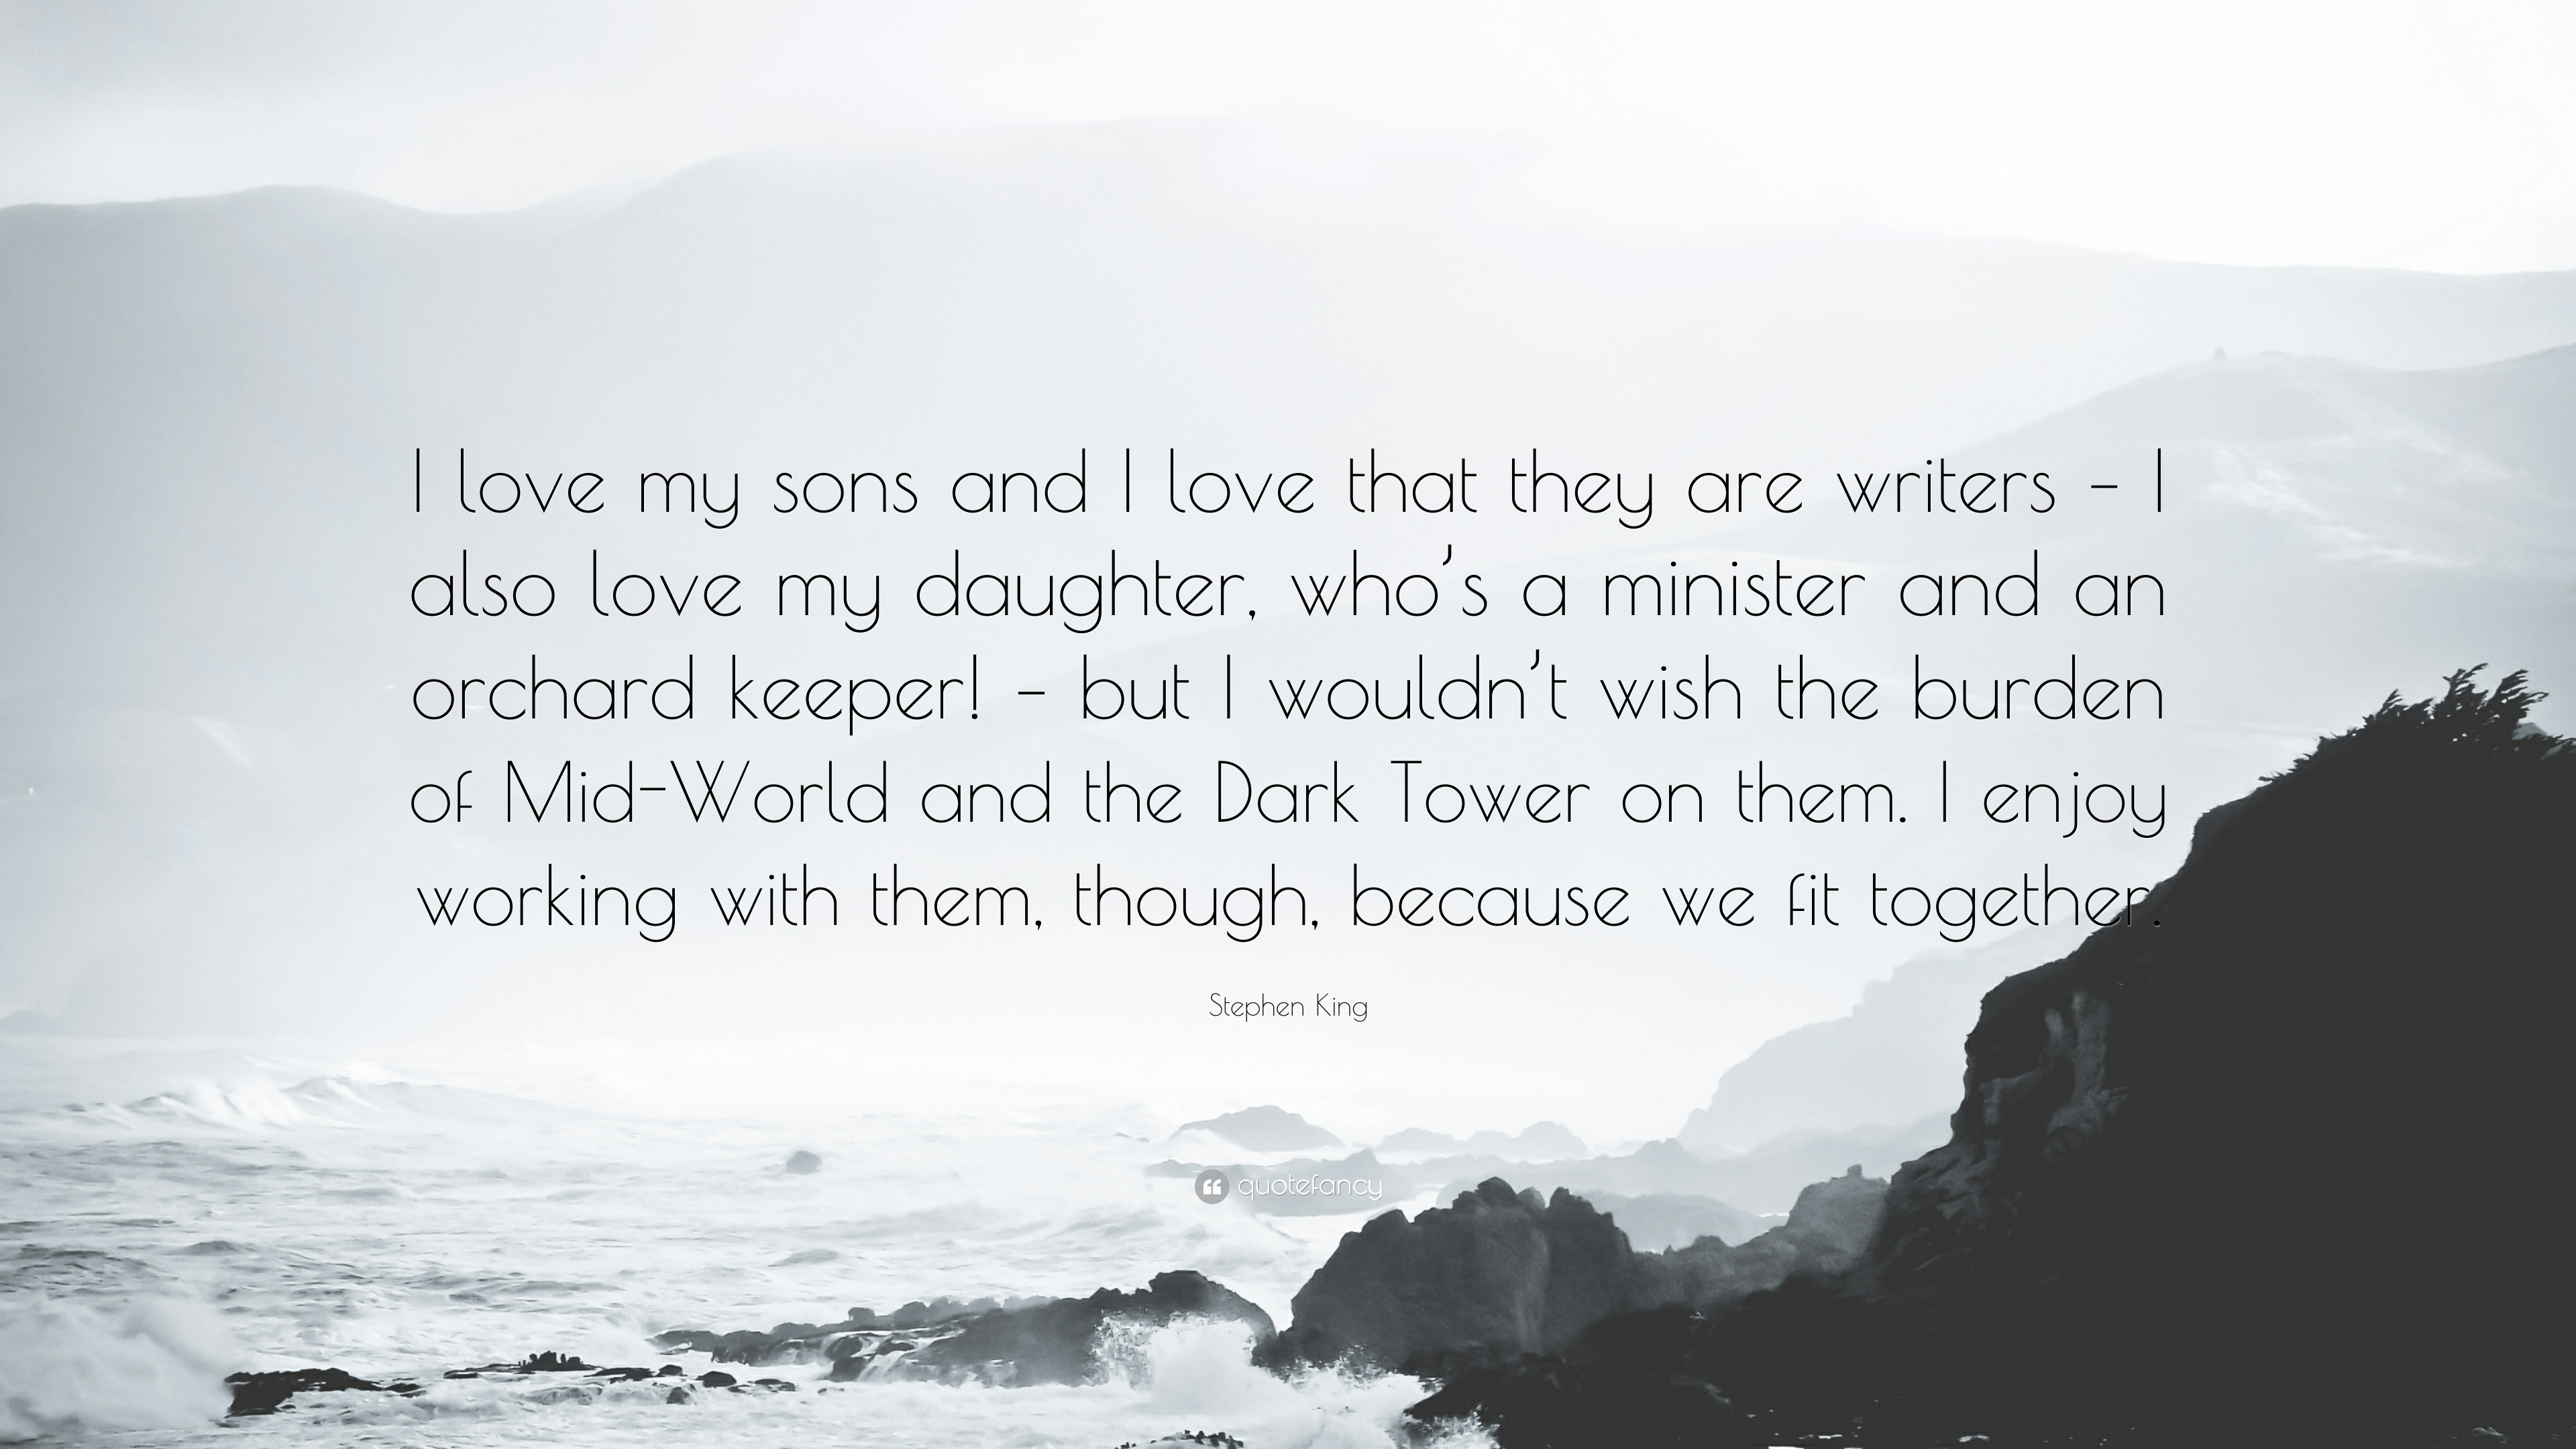 Stephen King Quote I Love My Sons And I Love That They Are Writers